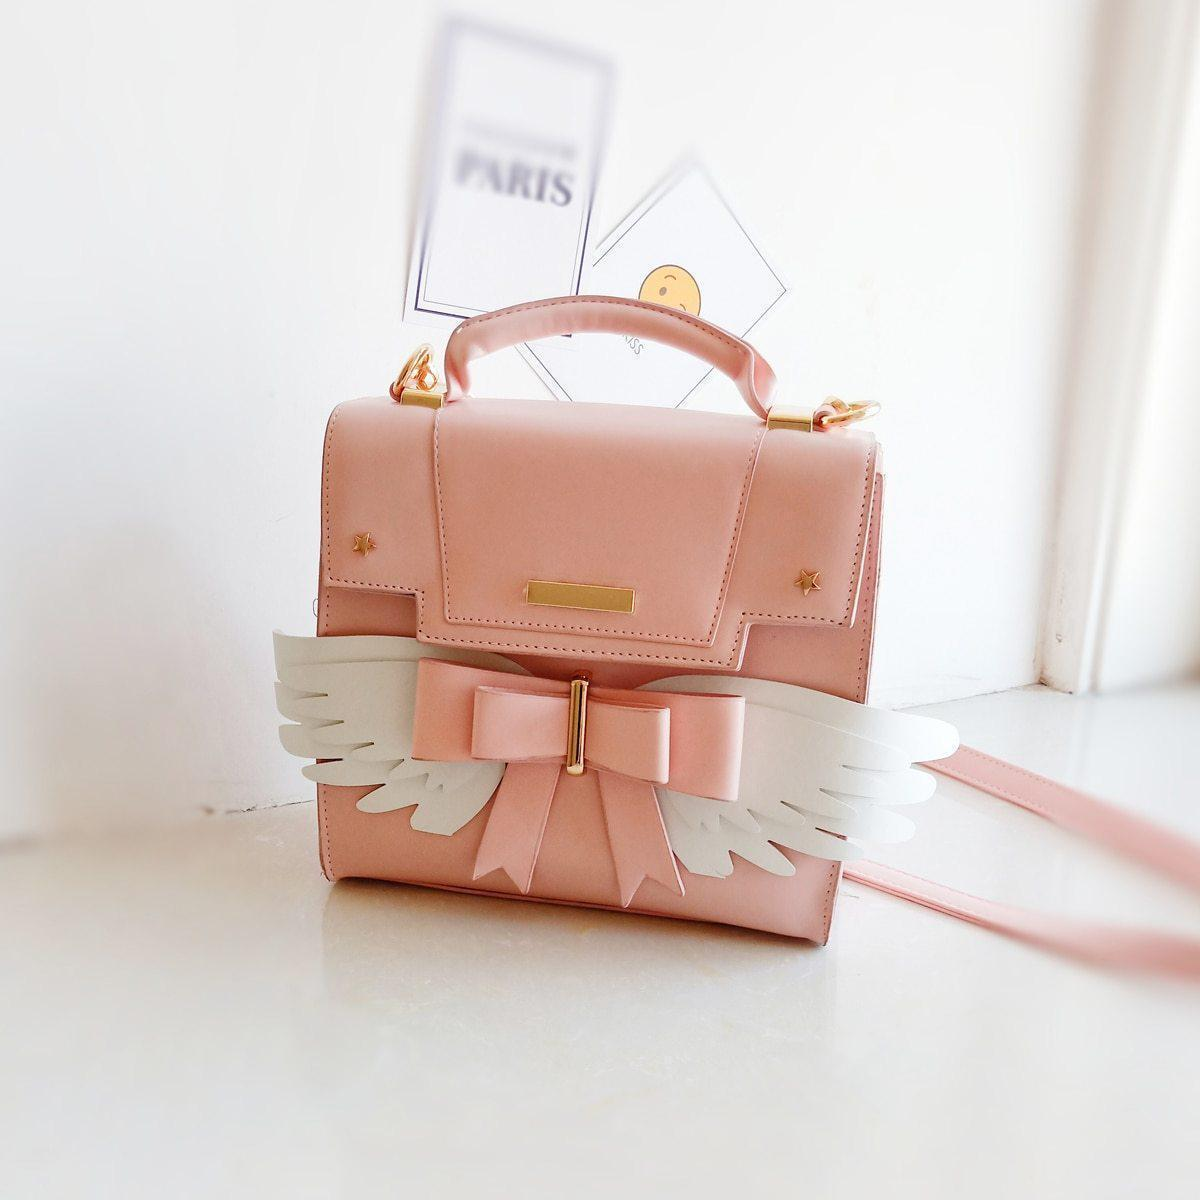 Lolita Wing Bow Shoulder Bag Kawaii Handbag #JU2621-Juku Store